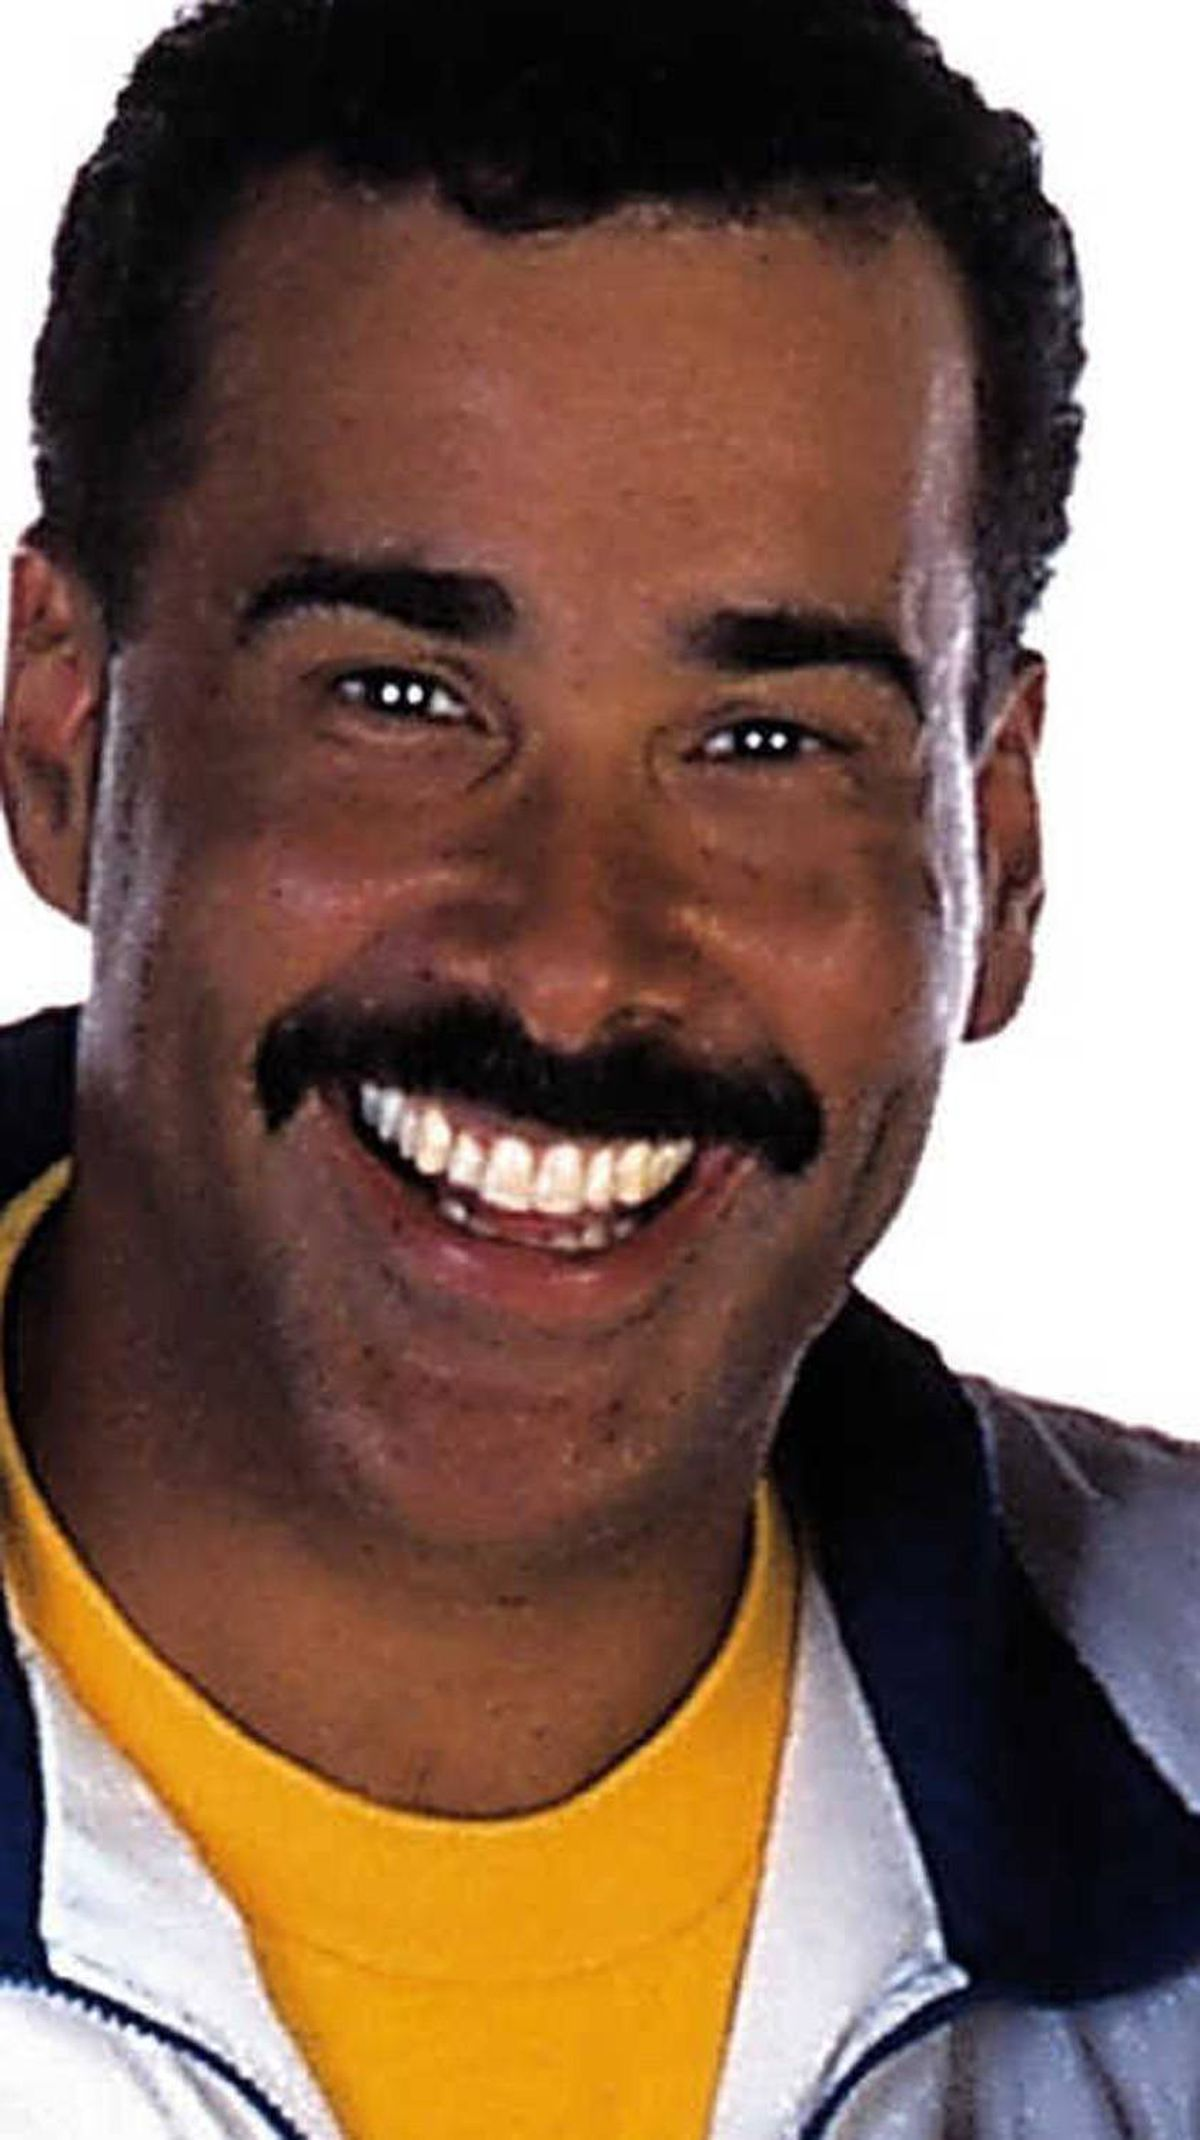 3. HAL JOHNSON What goes better with Hal Johnson than Joanne Mcleod? You guessed it: That moustache. Hal taught us how to eat well and exercise daily, but nothing hit home more than the beautiful marriage of a spandex suit and a perfectly groomed lip worm.